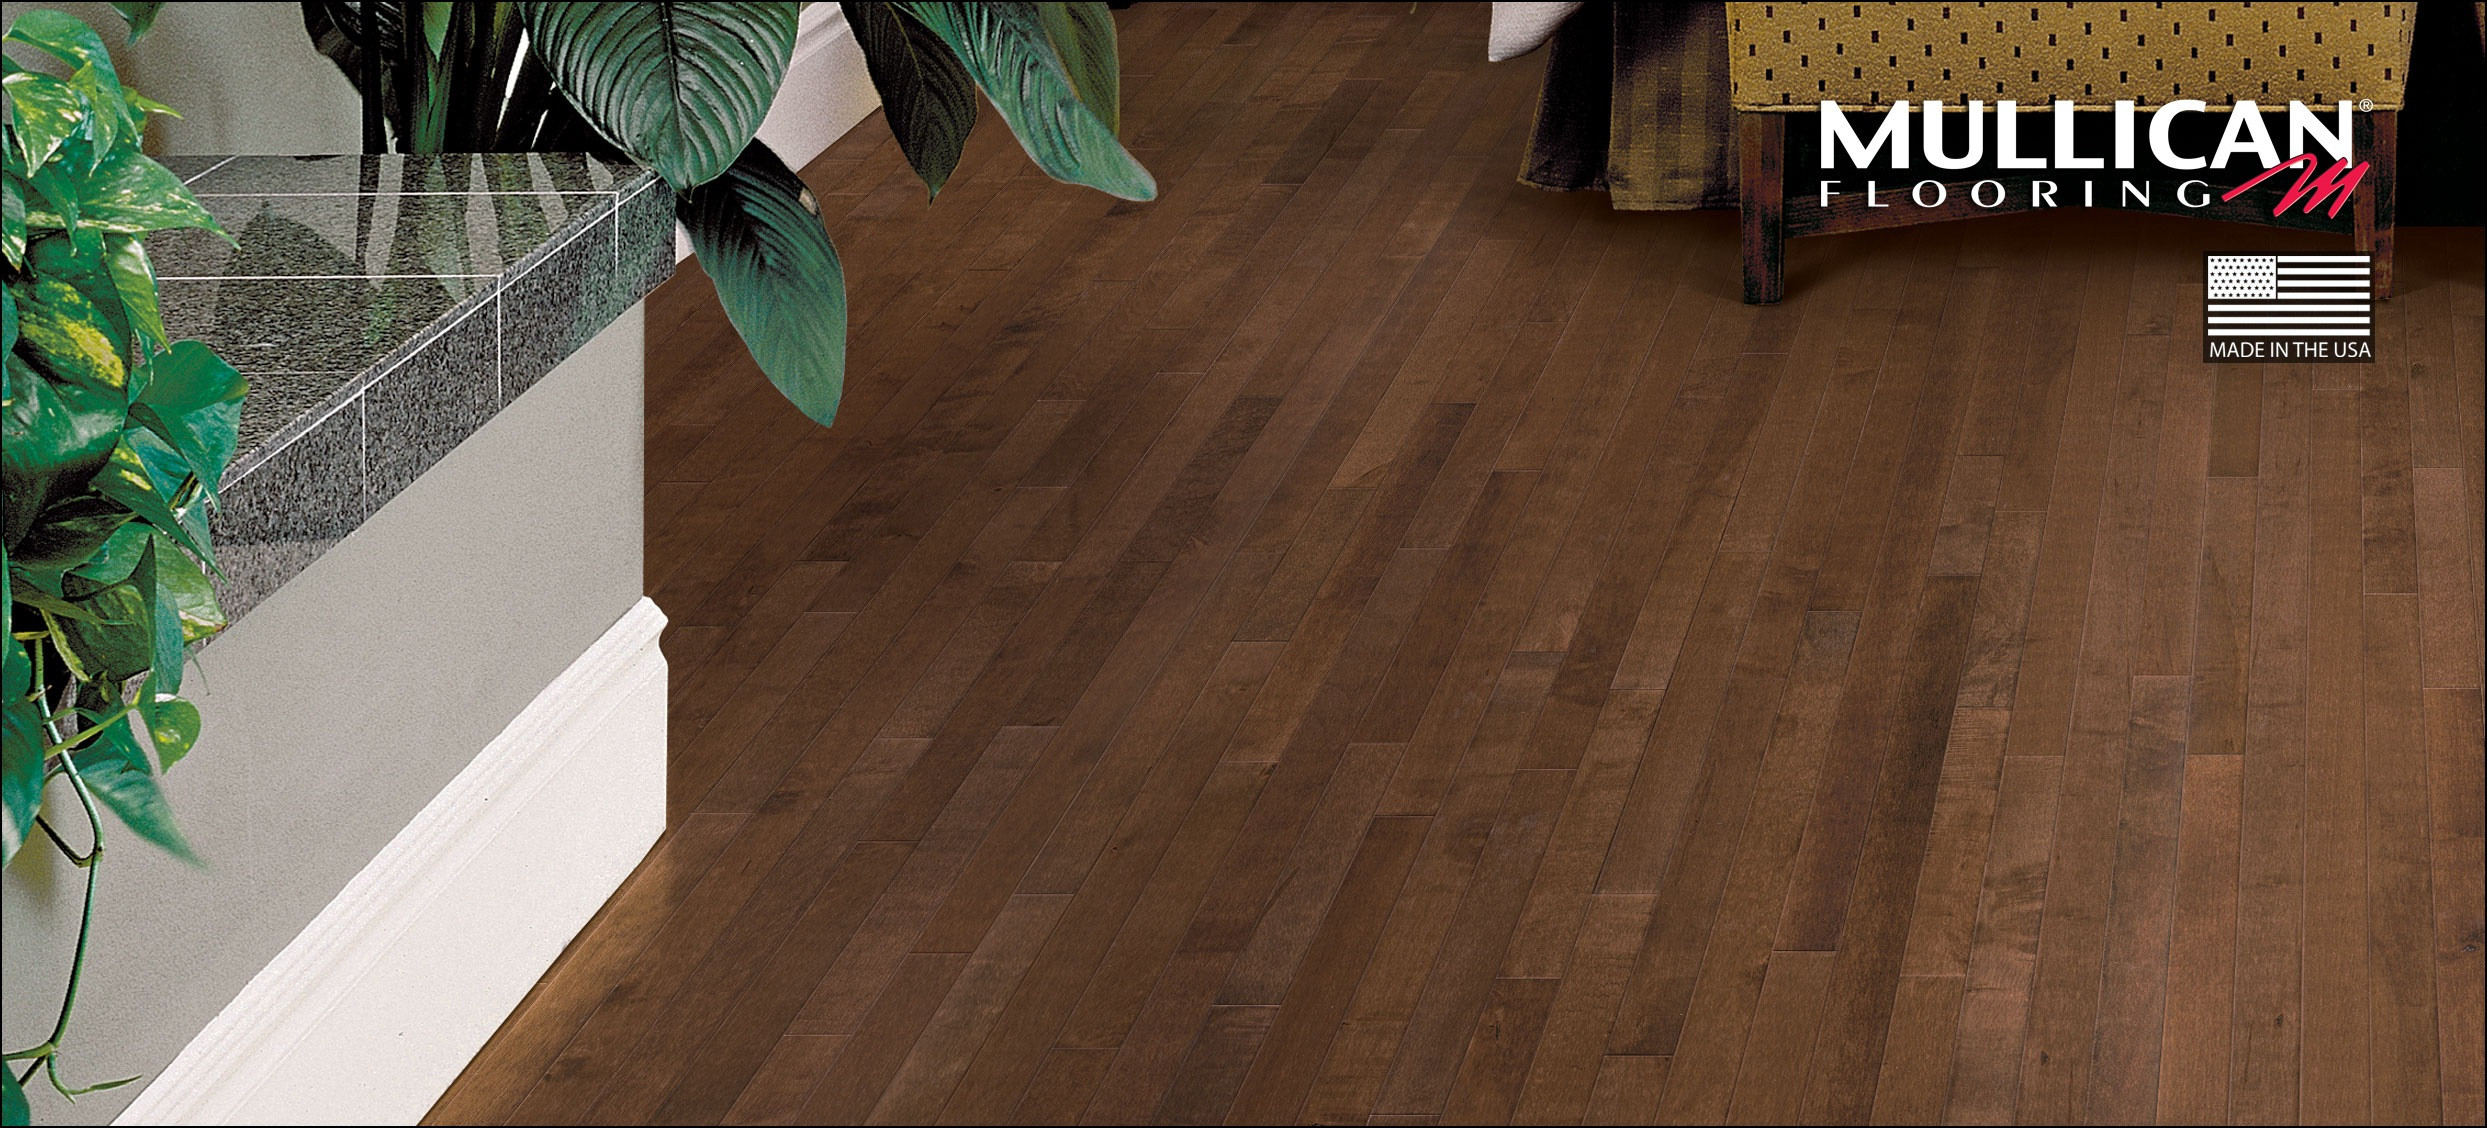 hand scraped hardwood flooring lowes of wide plank flooring ideas in wide plank wood flooring lowes photographies mullican flooring home of wide plank wood flooring lowes